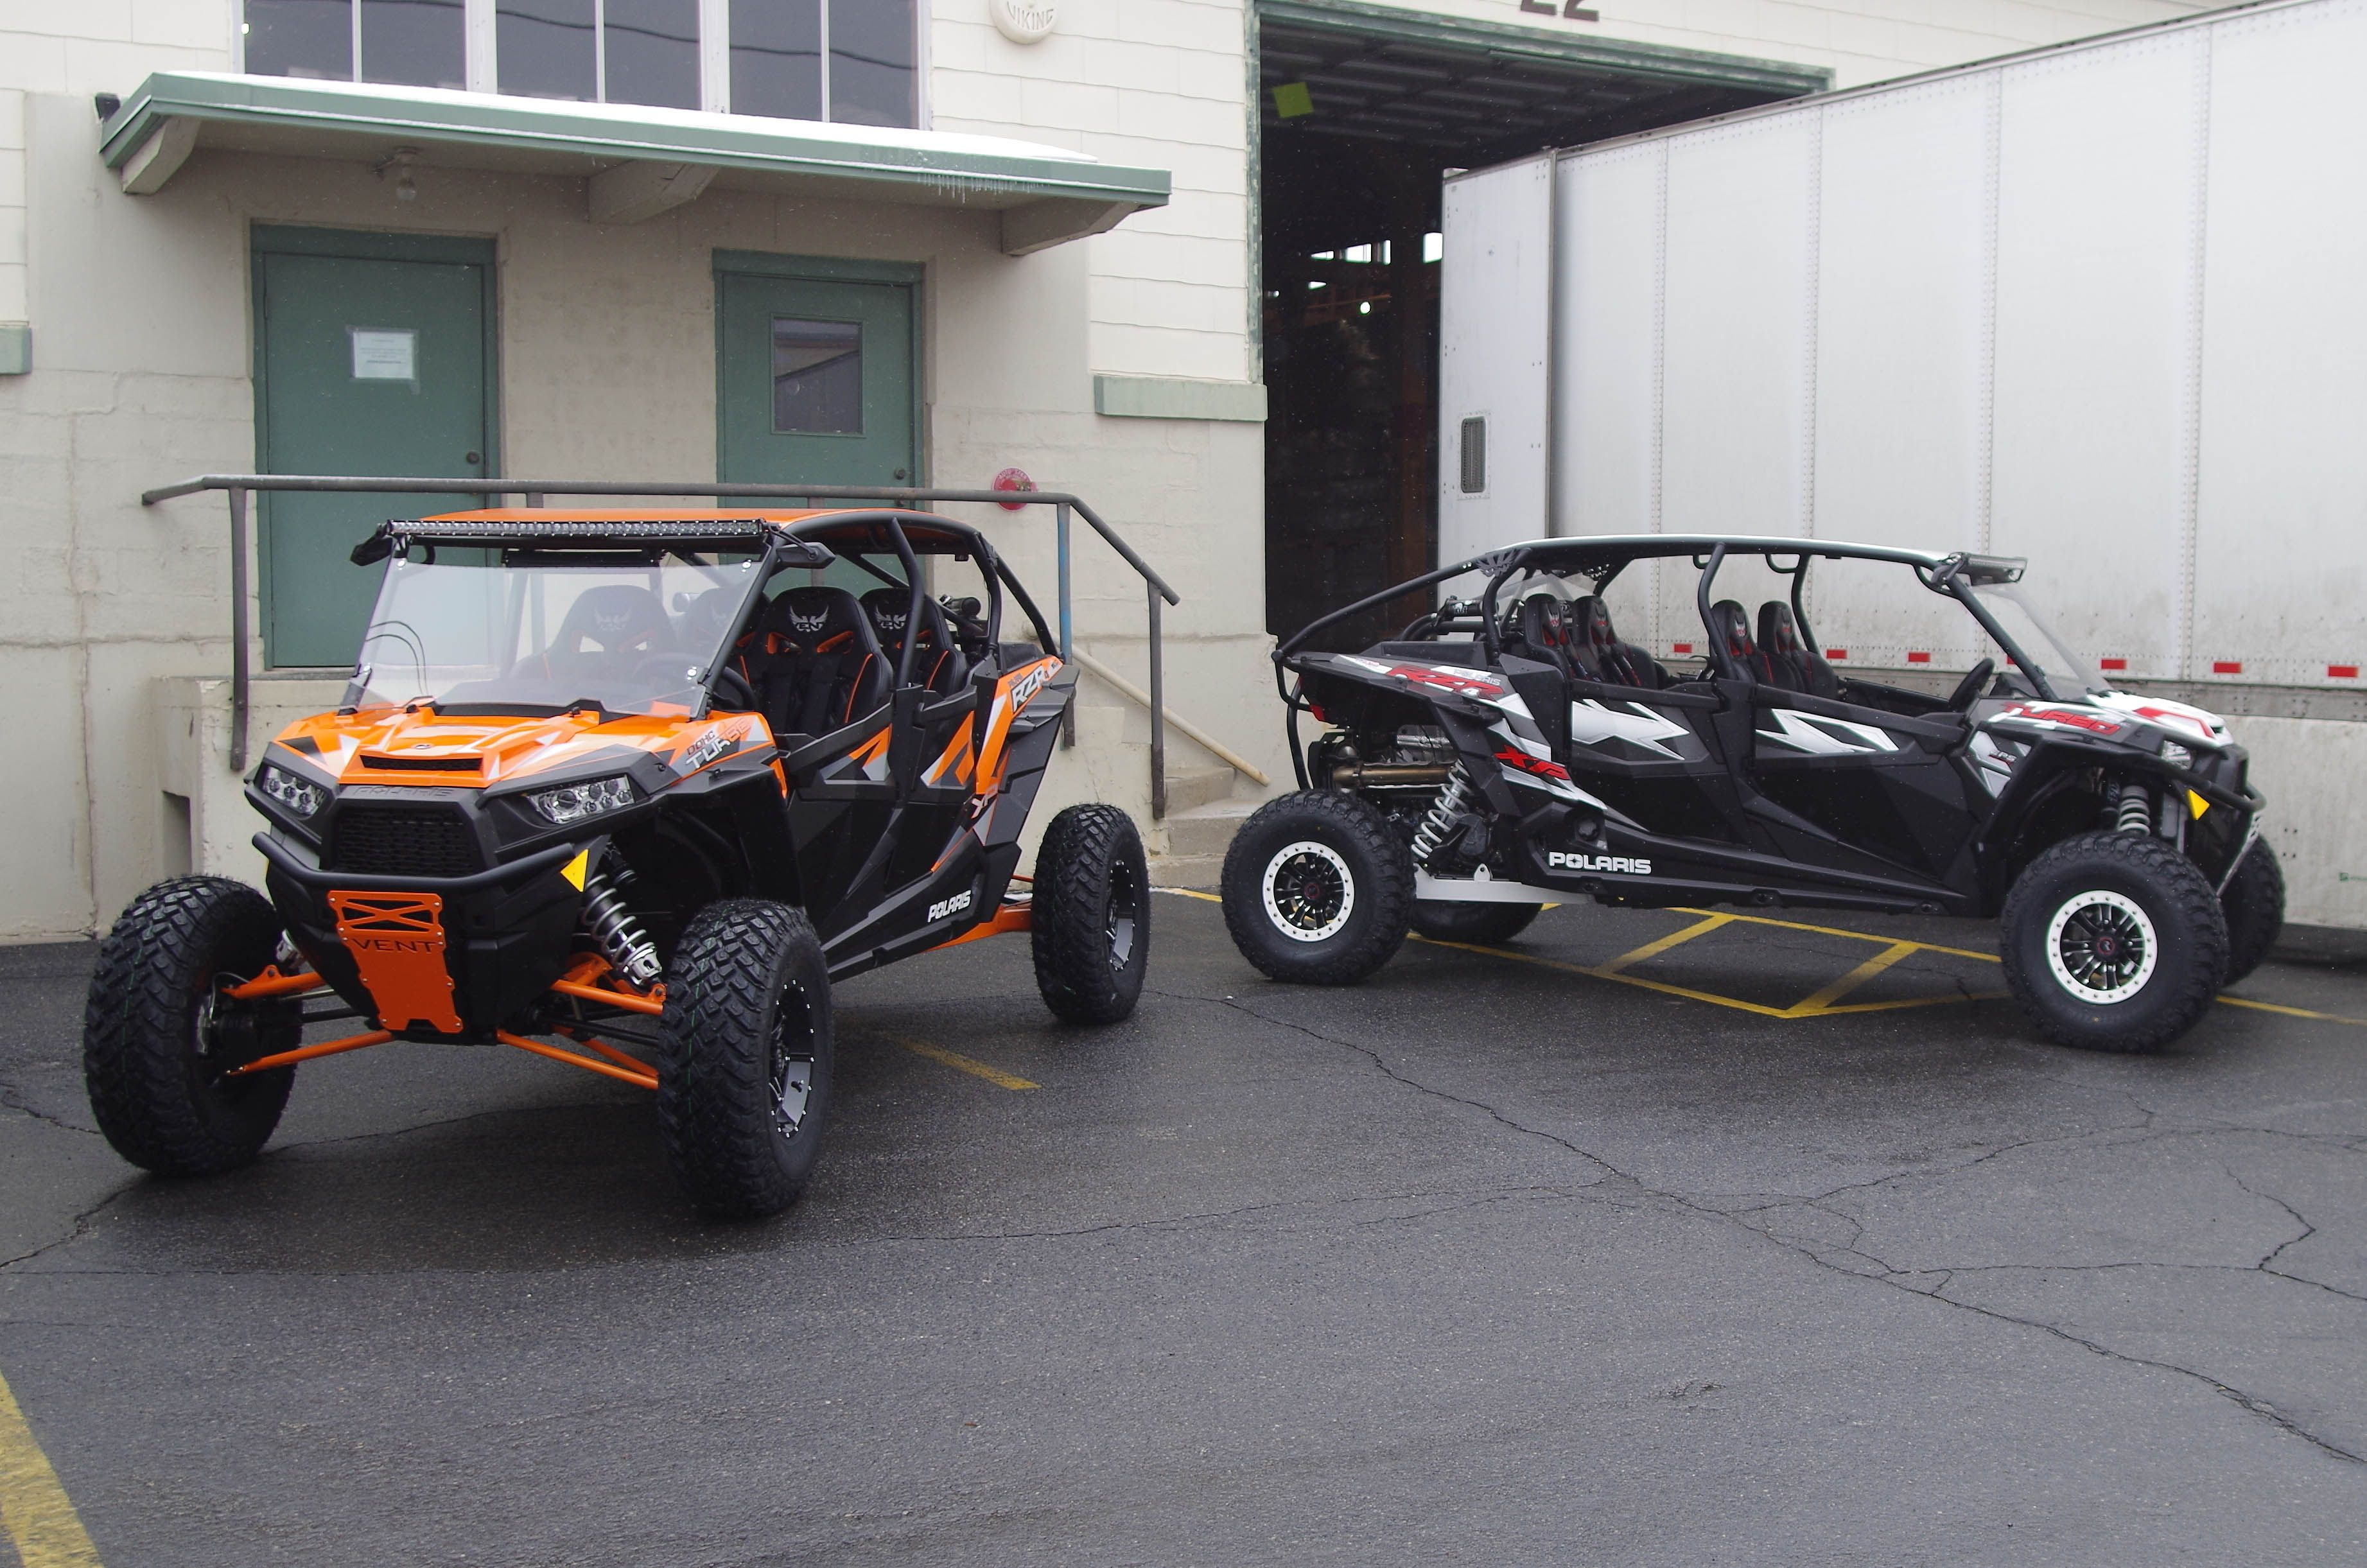 These 2016 Turbo Polaris Rzr Xp 1000 With Vent Racing Fast